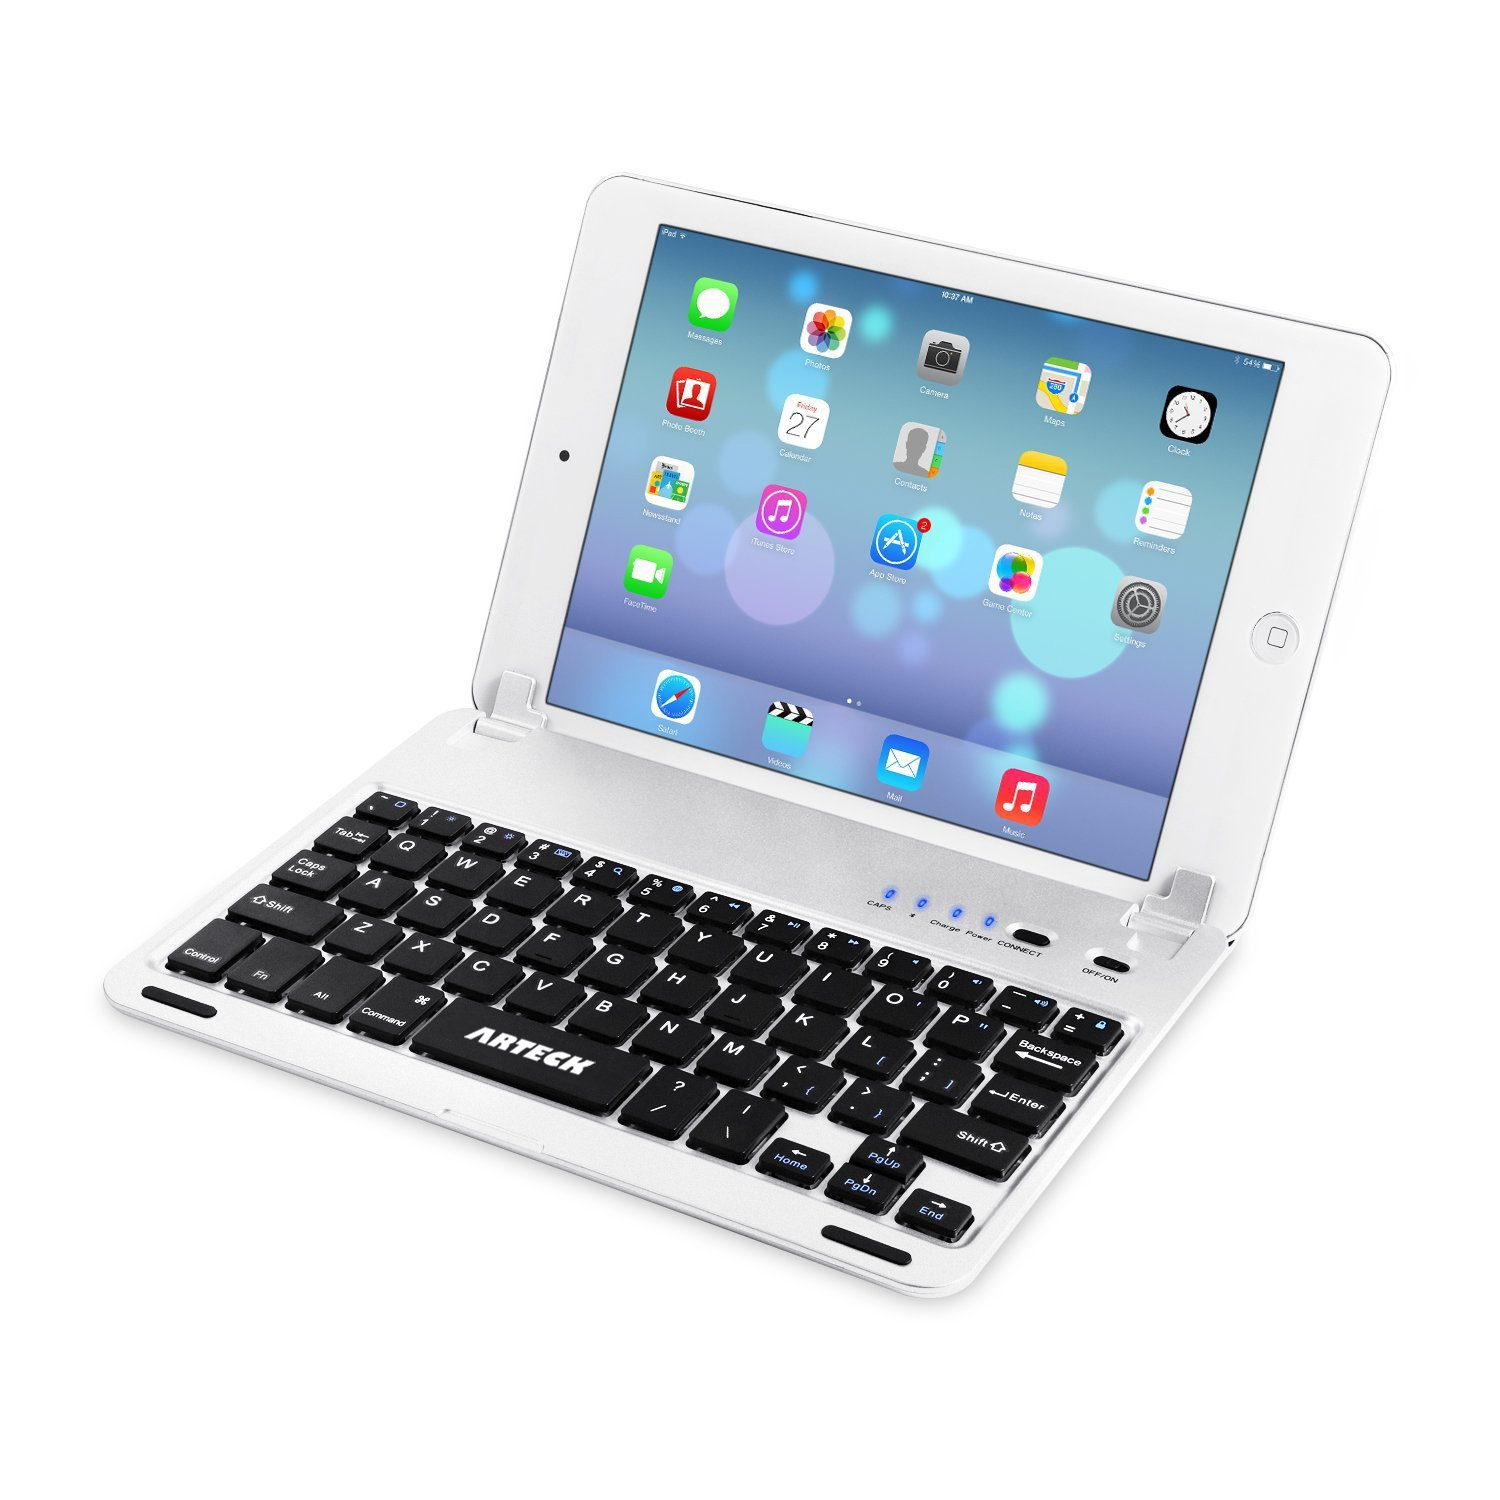 Arteck Ultra-Thin Apple iPad Mini Bluetooth Keyboard Folio Case Cover with Built-in Stand Groove for Apple iPad Mini 3/2 / 1 / iPad Mini with Retina Display with 130 Degree Swivel Rotating HB045